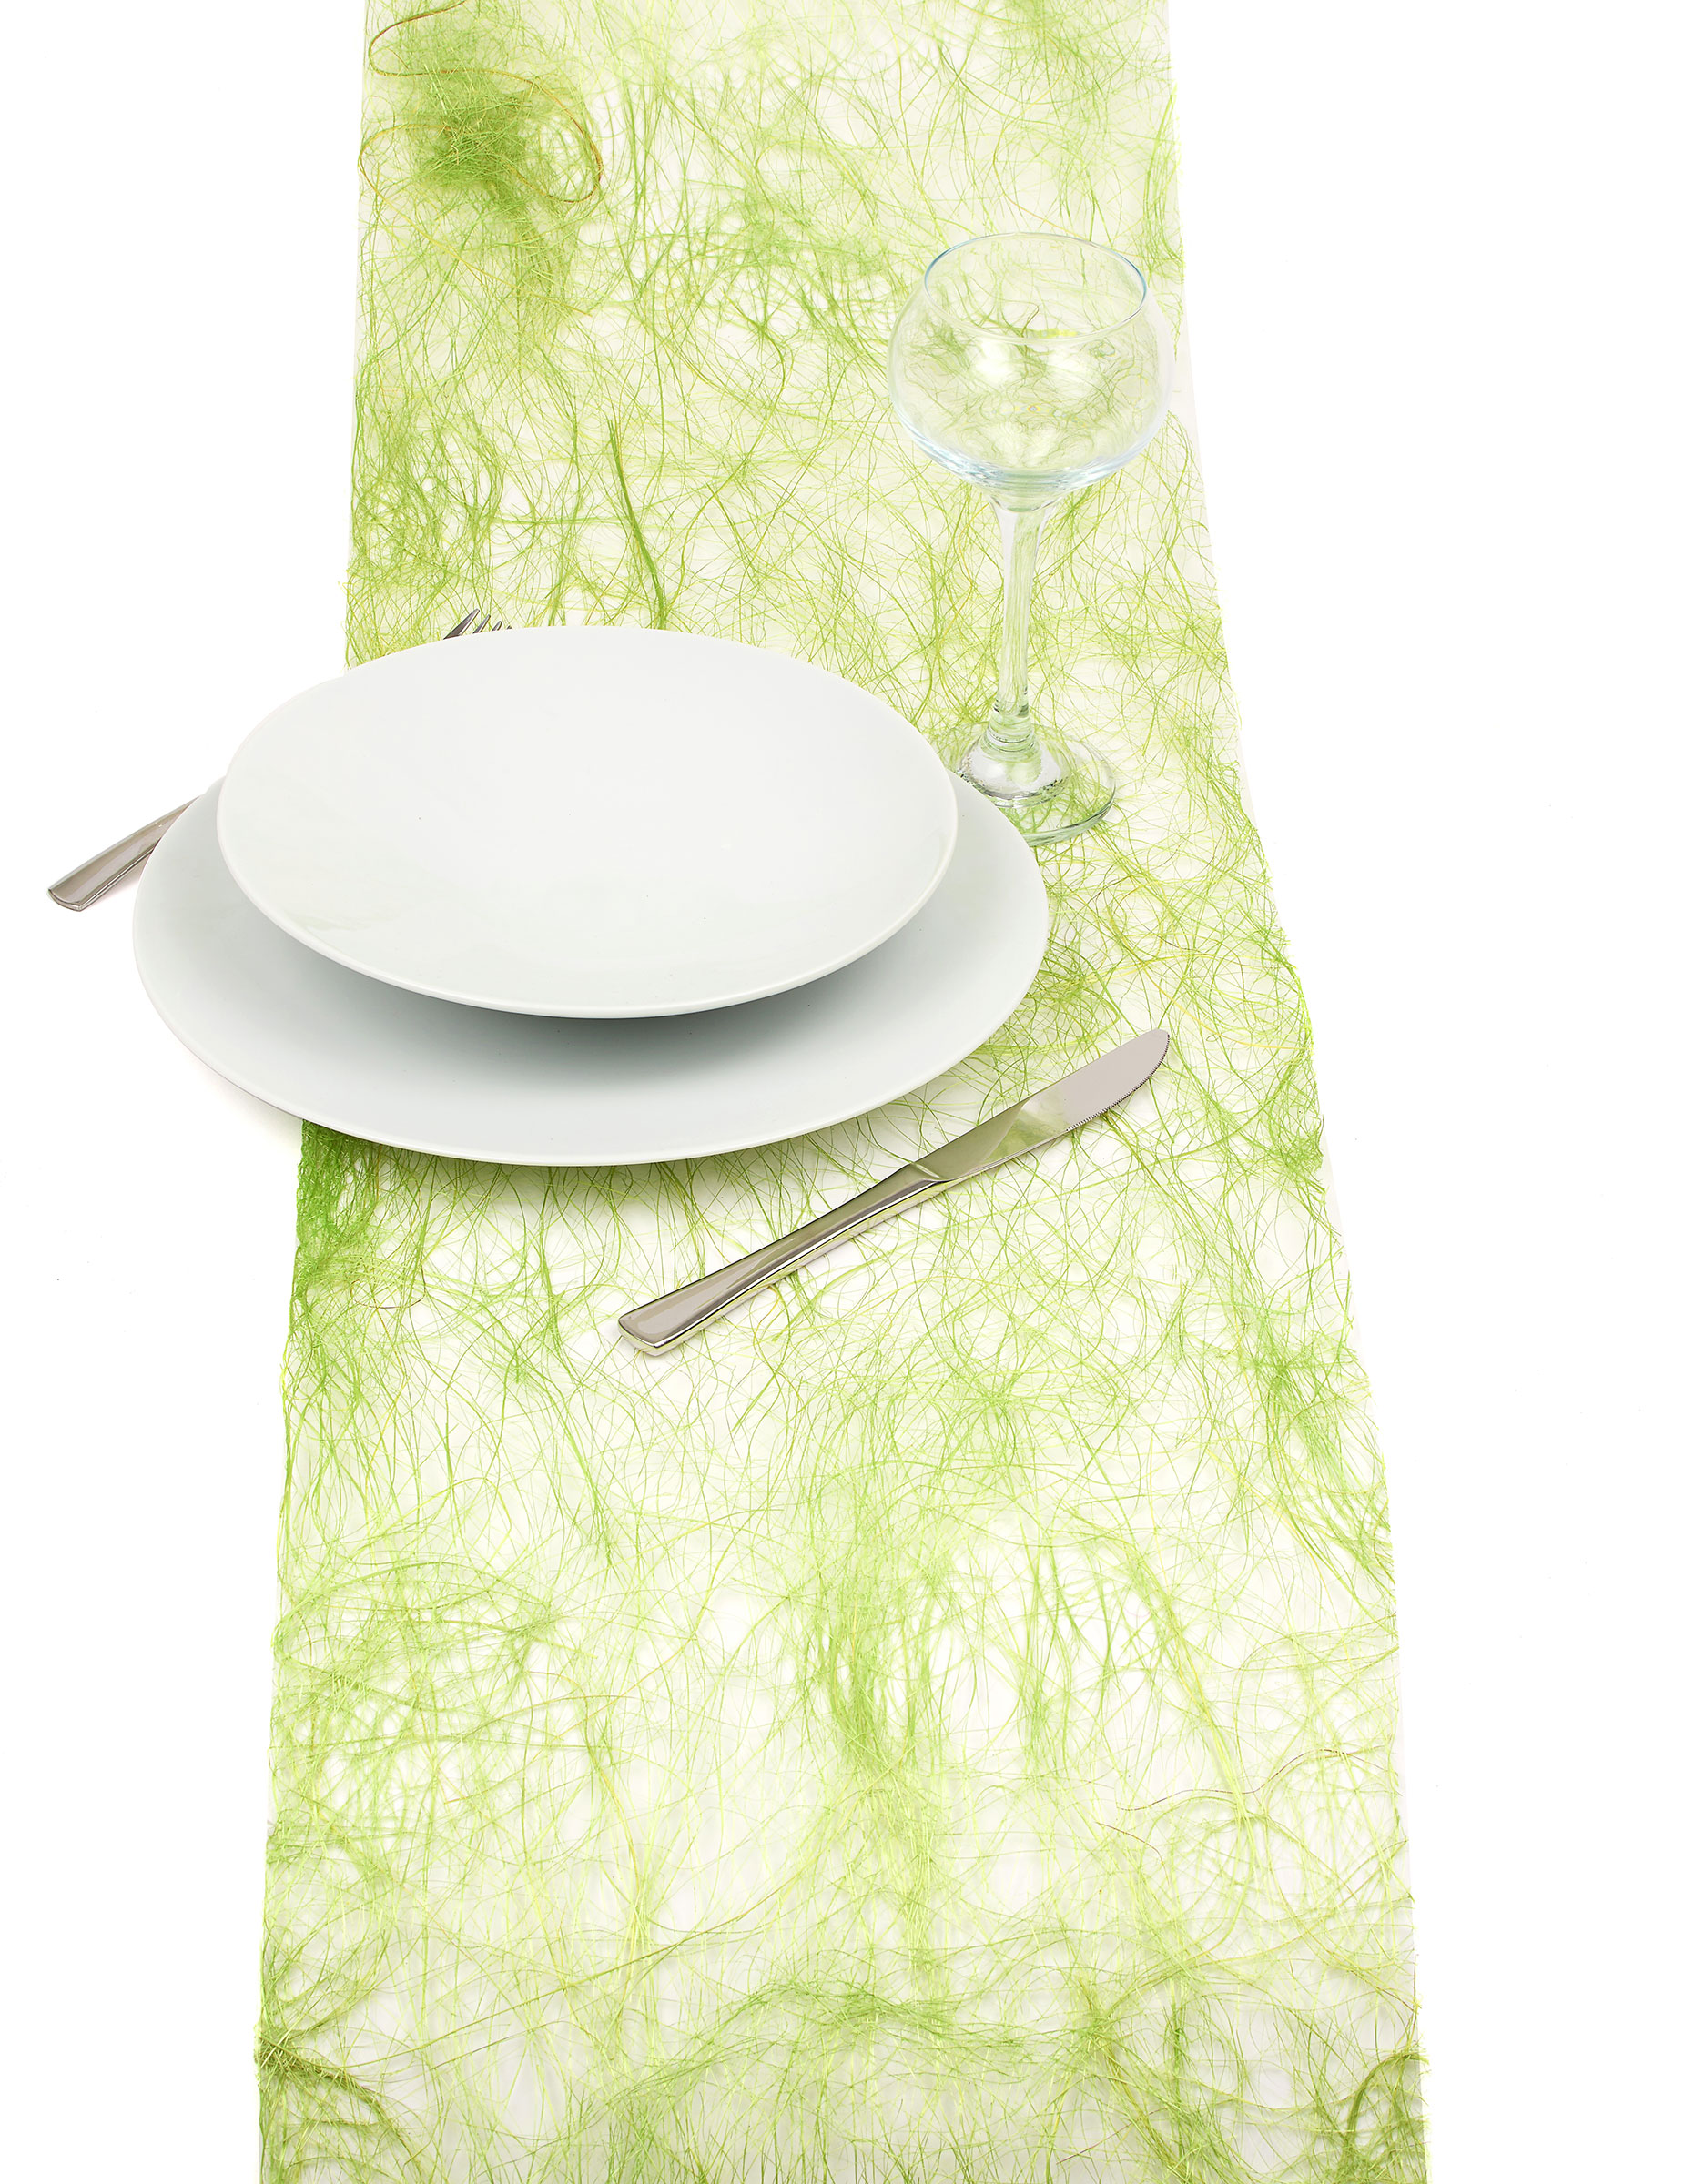 chemin de table abaca vert anis d coration anniversaire et f tes th me sur vegaoo party. Black Bedroom Furniture Sets. Home Design Ideas